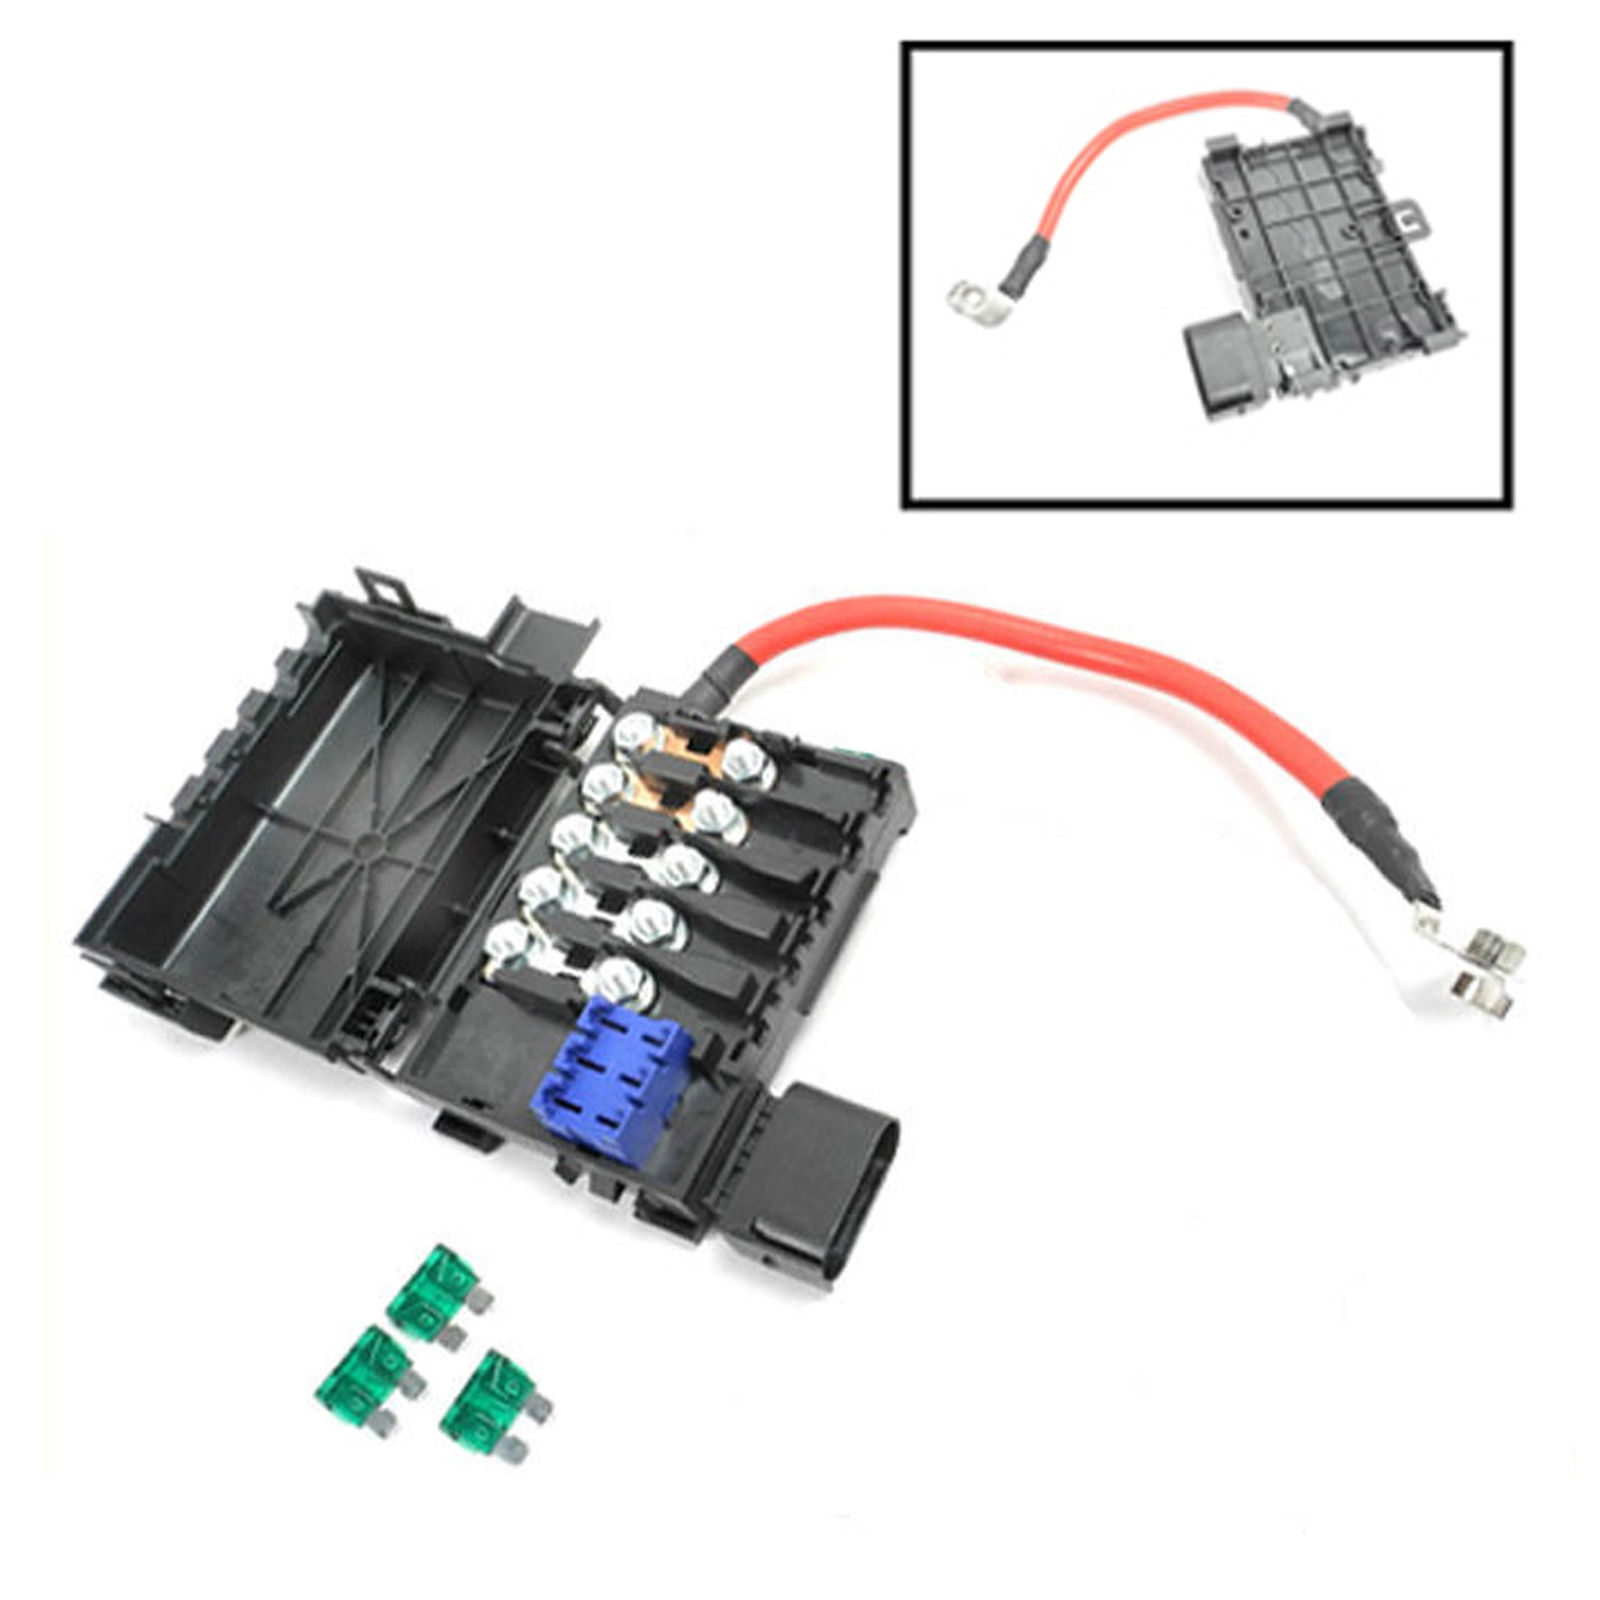 hight resolution of details about no more breaking for vw jetta golf beetle 1 8 2 0 fuse box 1j0937617d nbc061b